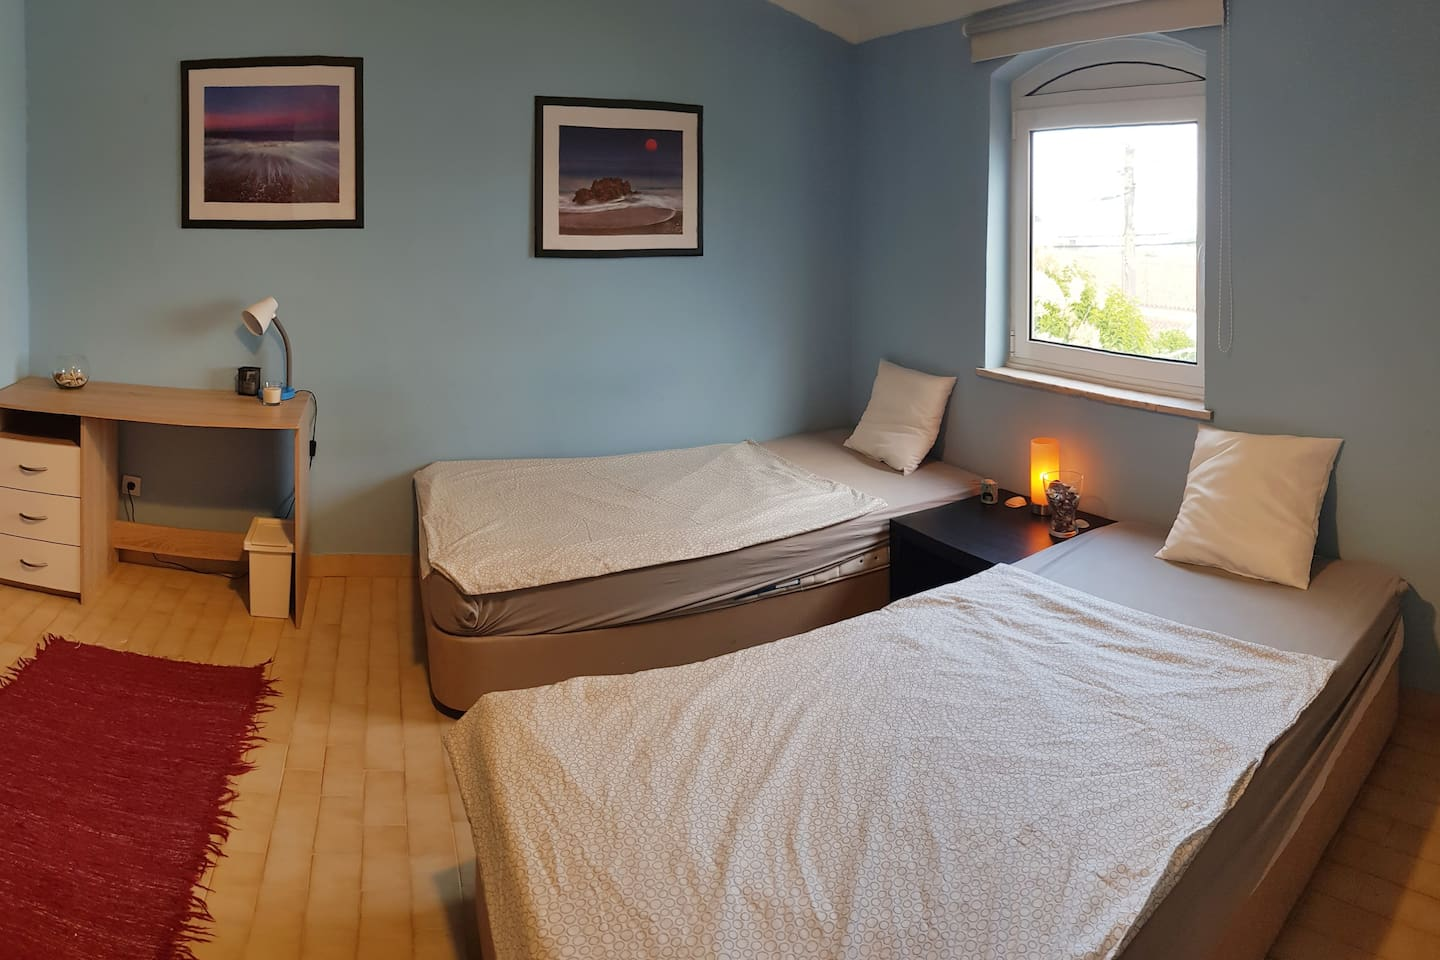 This is the bedroom which offers space for up to three persons and is part of a 5 bedroom house. WiFi signal is available in the room.